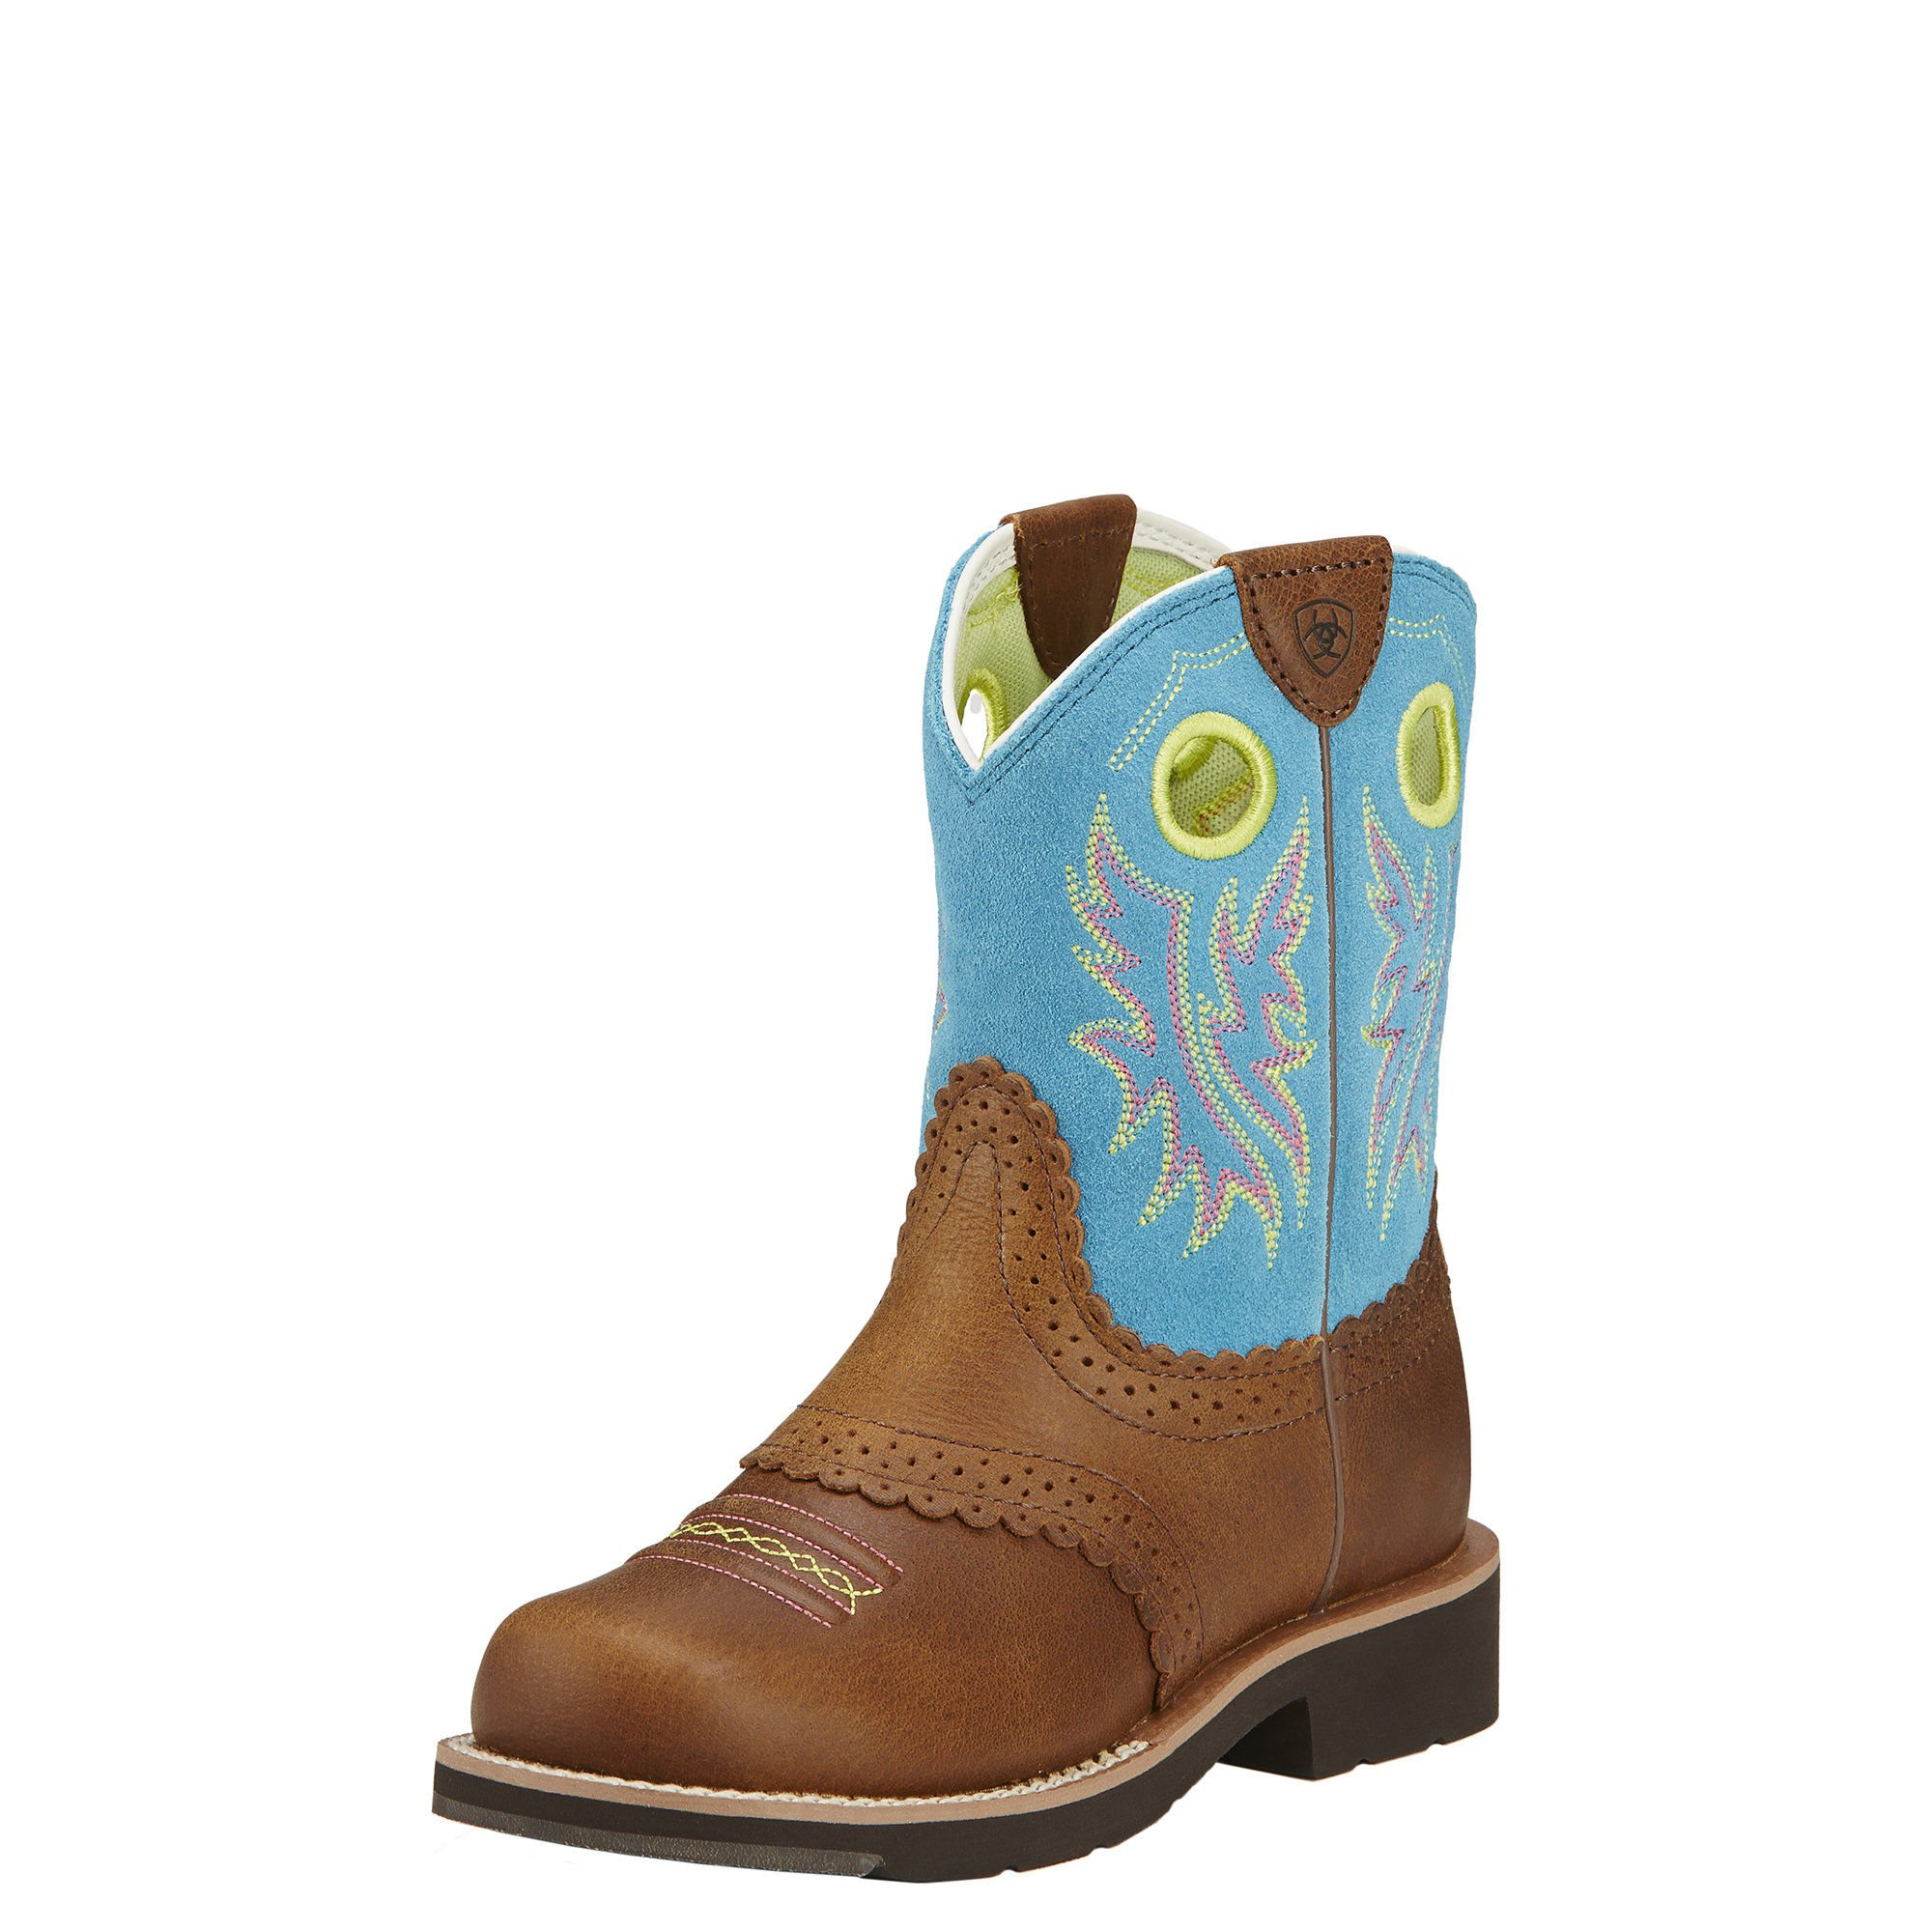 Ariat Kids' Fatbaby Cowgirl Western Cowboy Boot, Black Country Tan/Bright Blue, 4.5 M US Big Kid